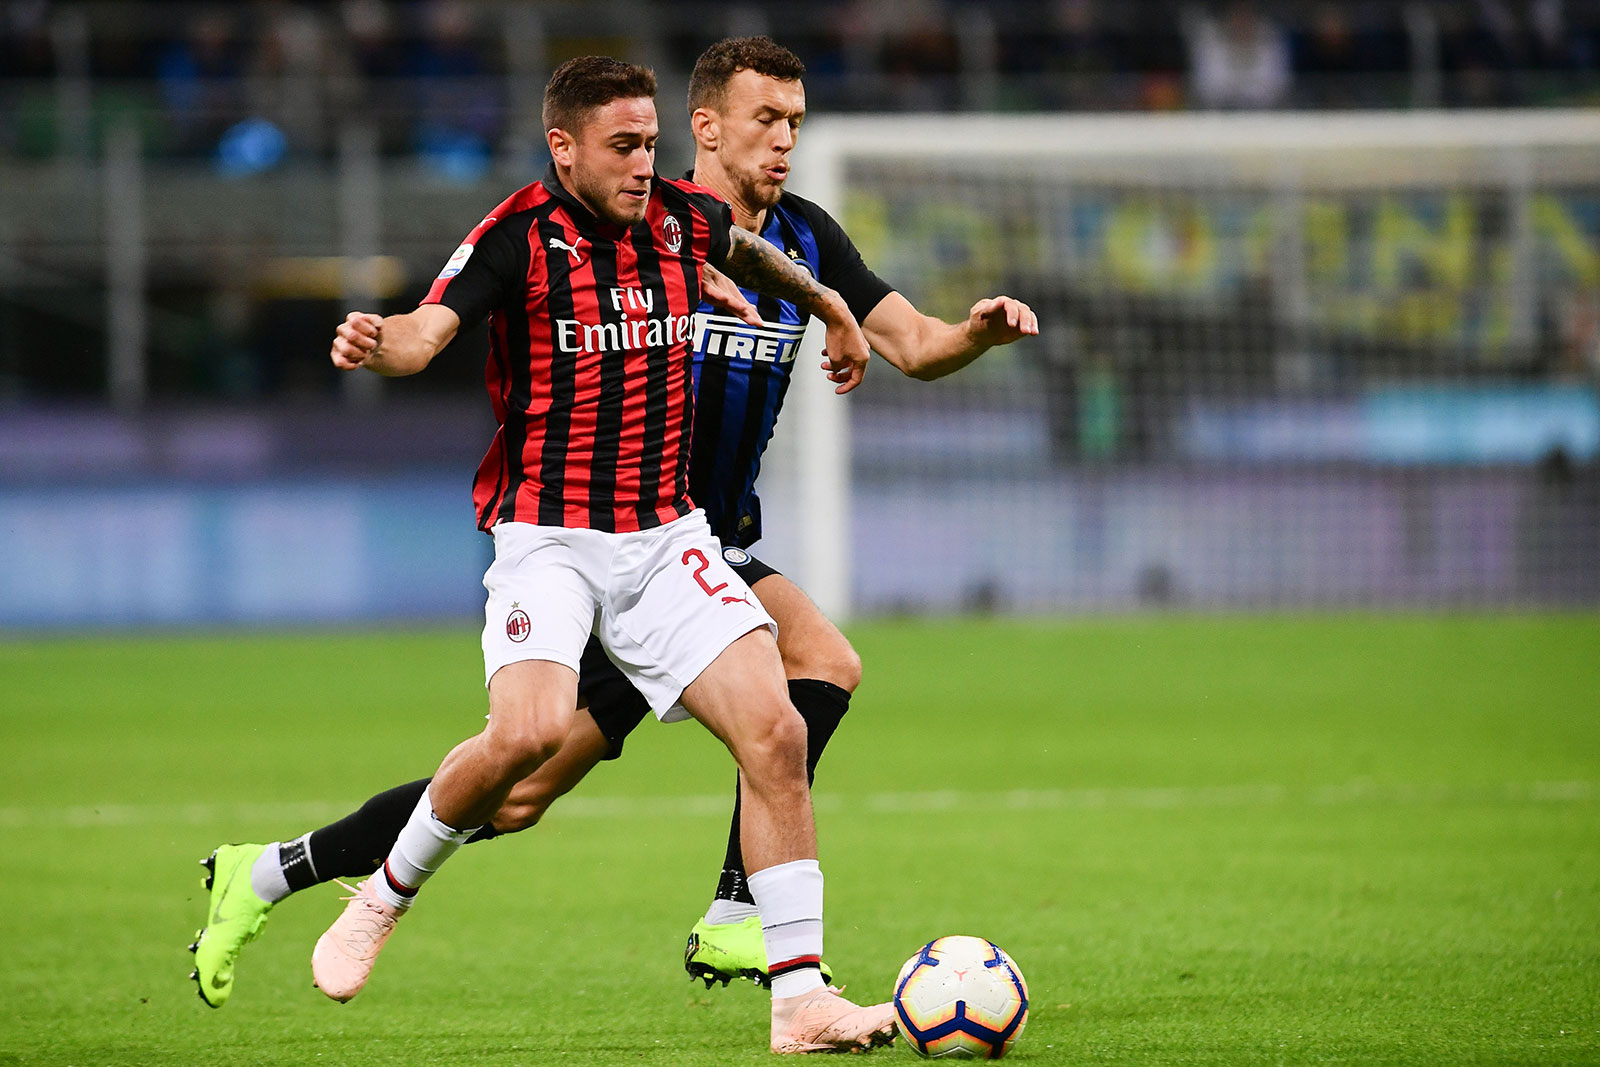 Davide Calabria and Ivan Perišić during Inter-Milan at Stadio San Siro on October 21, 2018. (MARCO BERTORELLO/AFP/Getty Images)